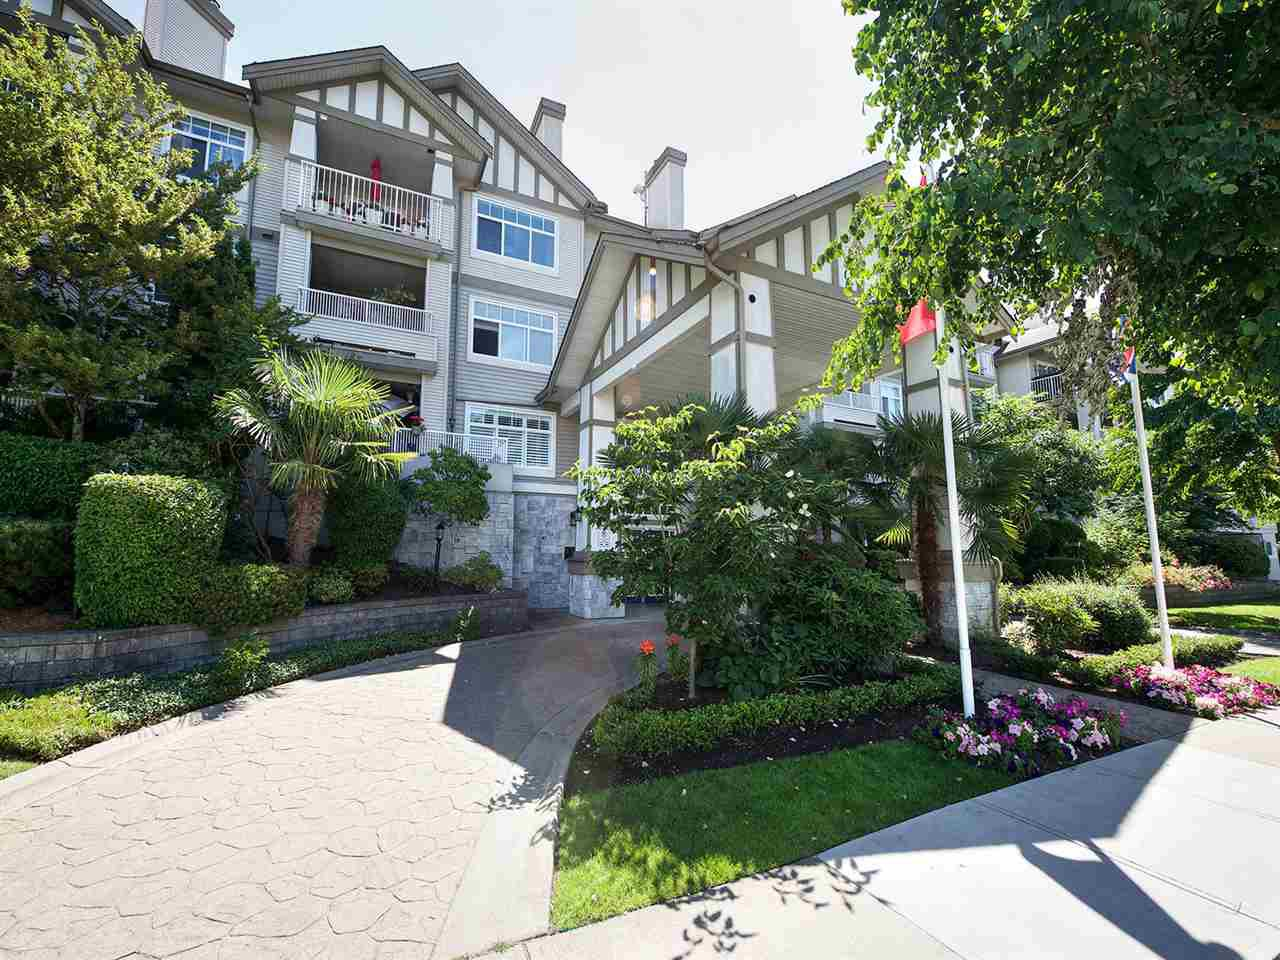 "Main Photo: 315 4770 52A Street in Delta: Delta Manor Condo for sale in ""WESTHAM LANE"" (Ladner)  : MLS®# R2189063"